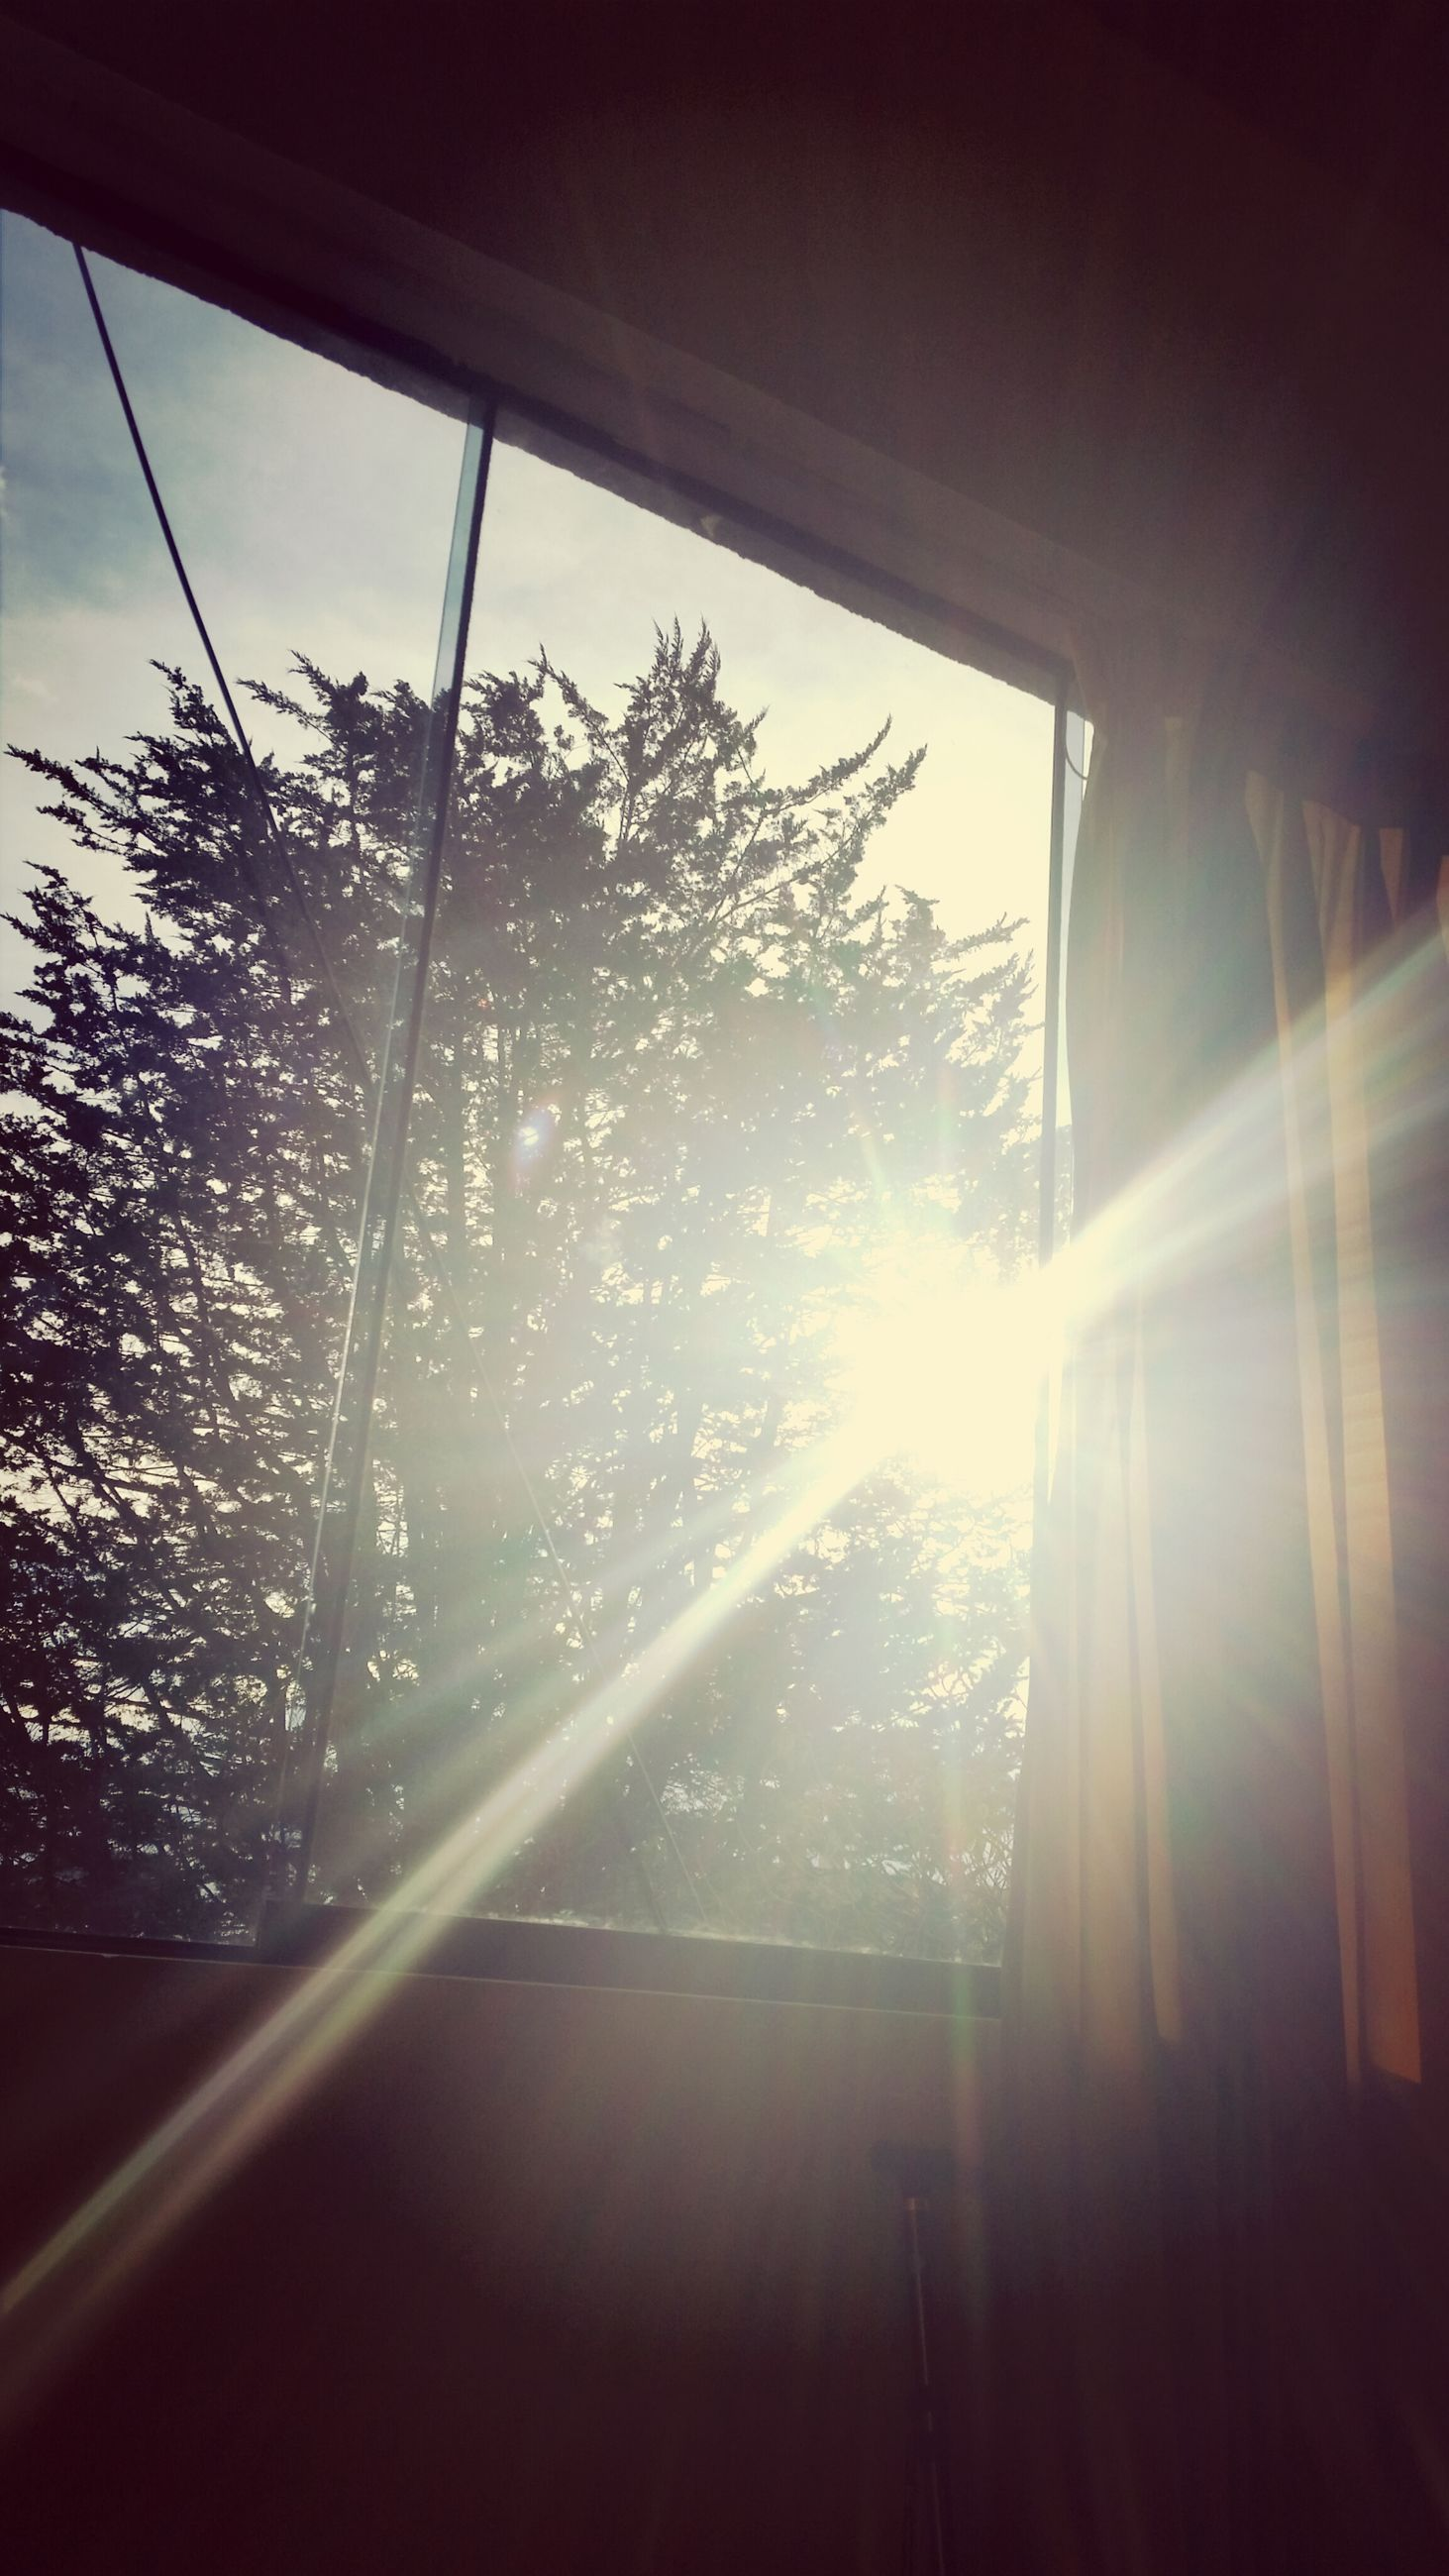 window, indoors, sunbeam, sun, sunlight, glass - material, tree, lens flare, transparent, built structure, day, architecture, bright, nature, looking through window, growth, curtain, no people, sunny, glass